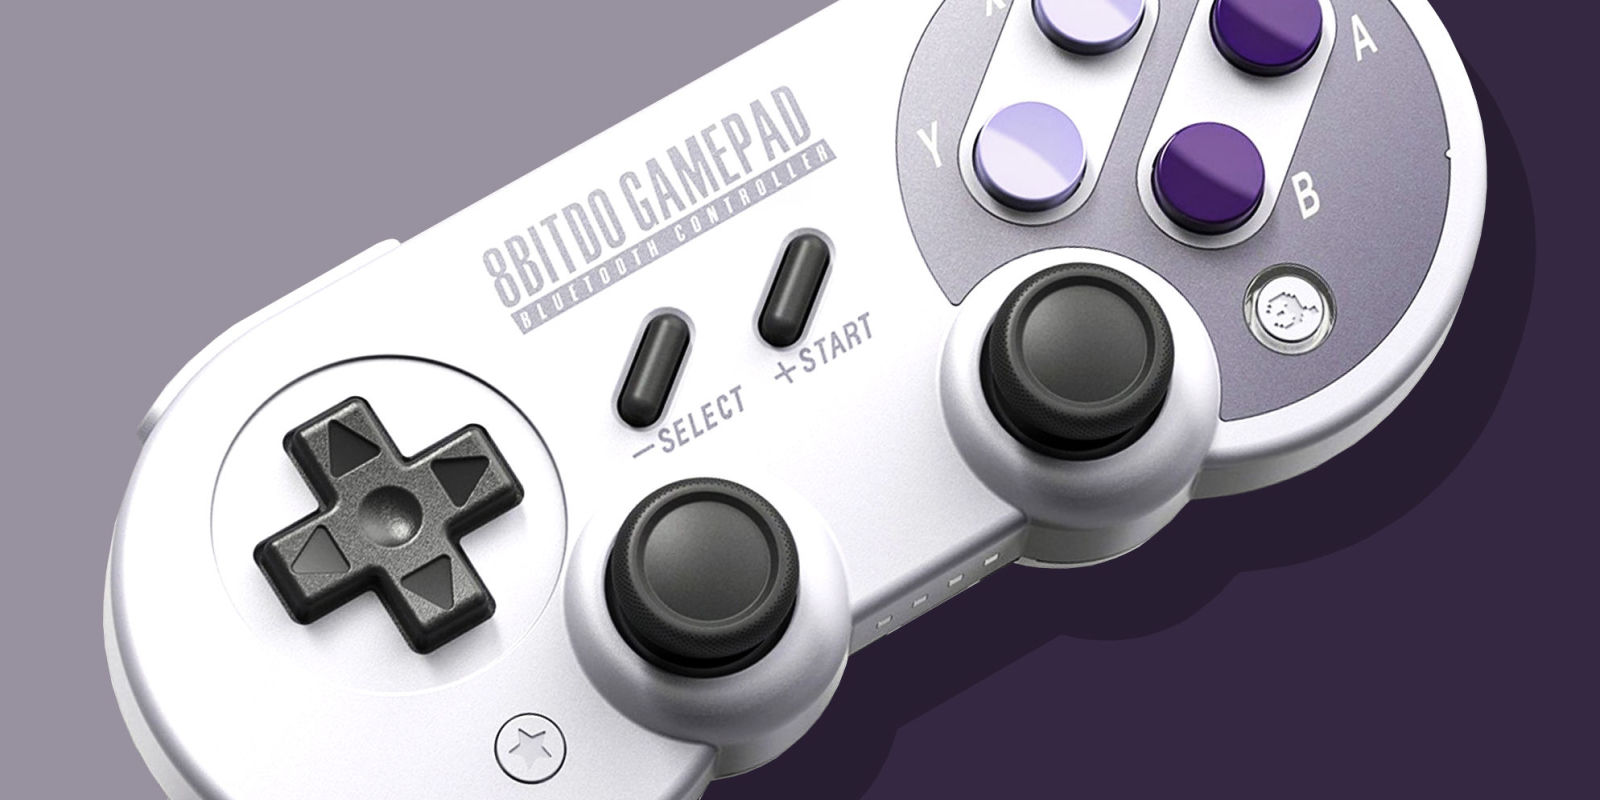 The Best Pc Game Controllers In 2018 11 Top Rated Gaming